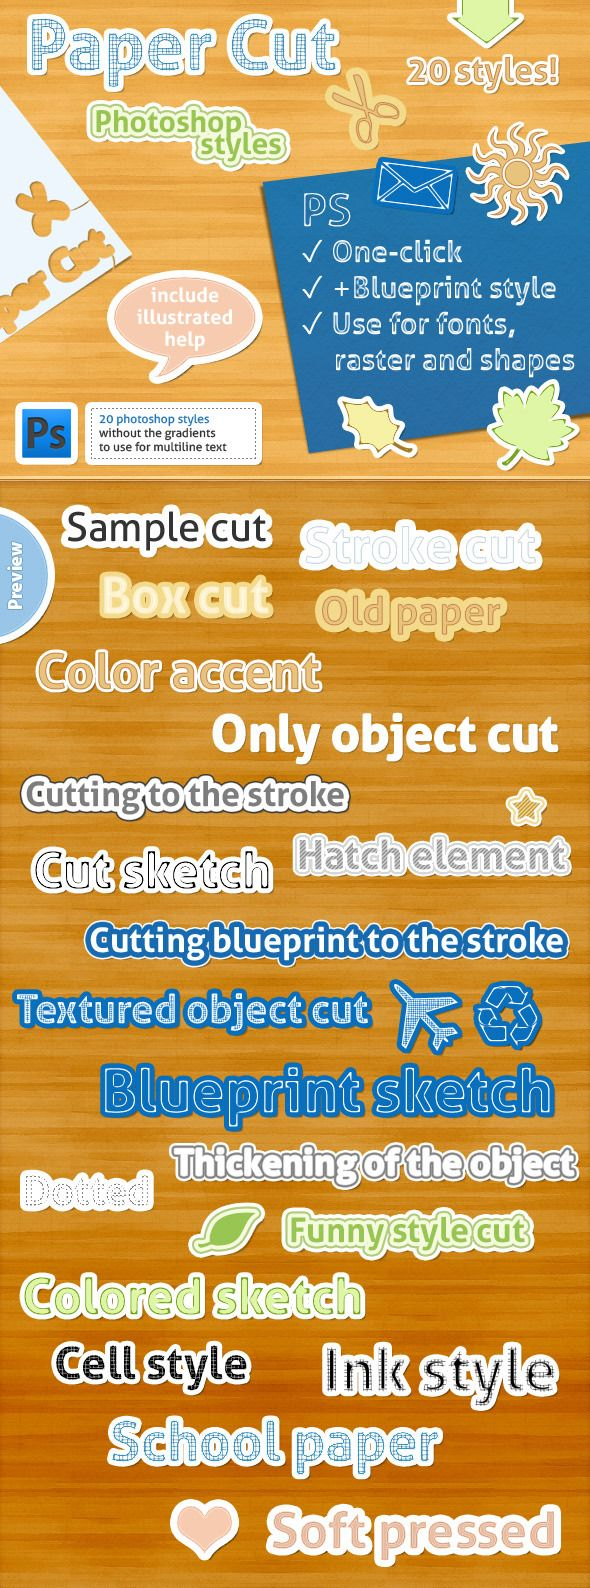 18 best photoshop actions brushes etc images on pinterest 20 photoshop styles paper cut malvernweather Image collections